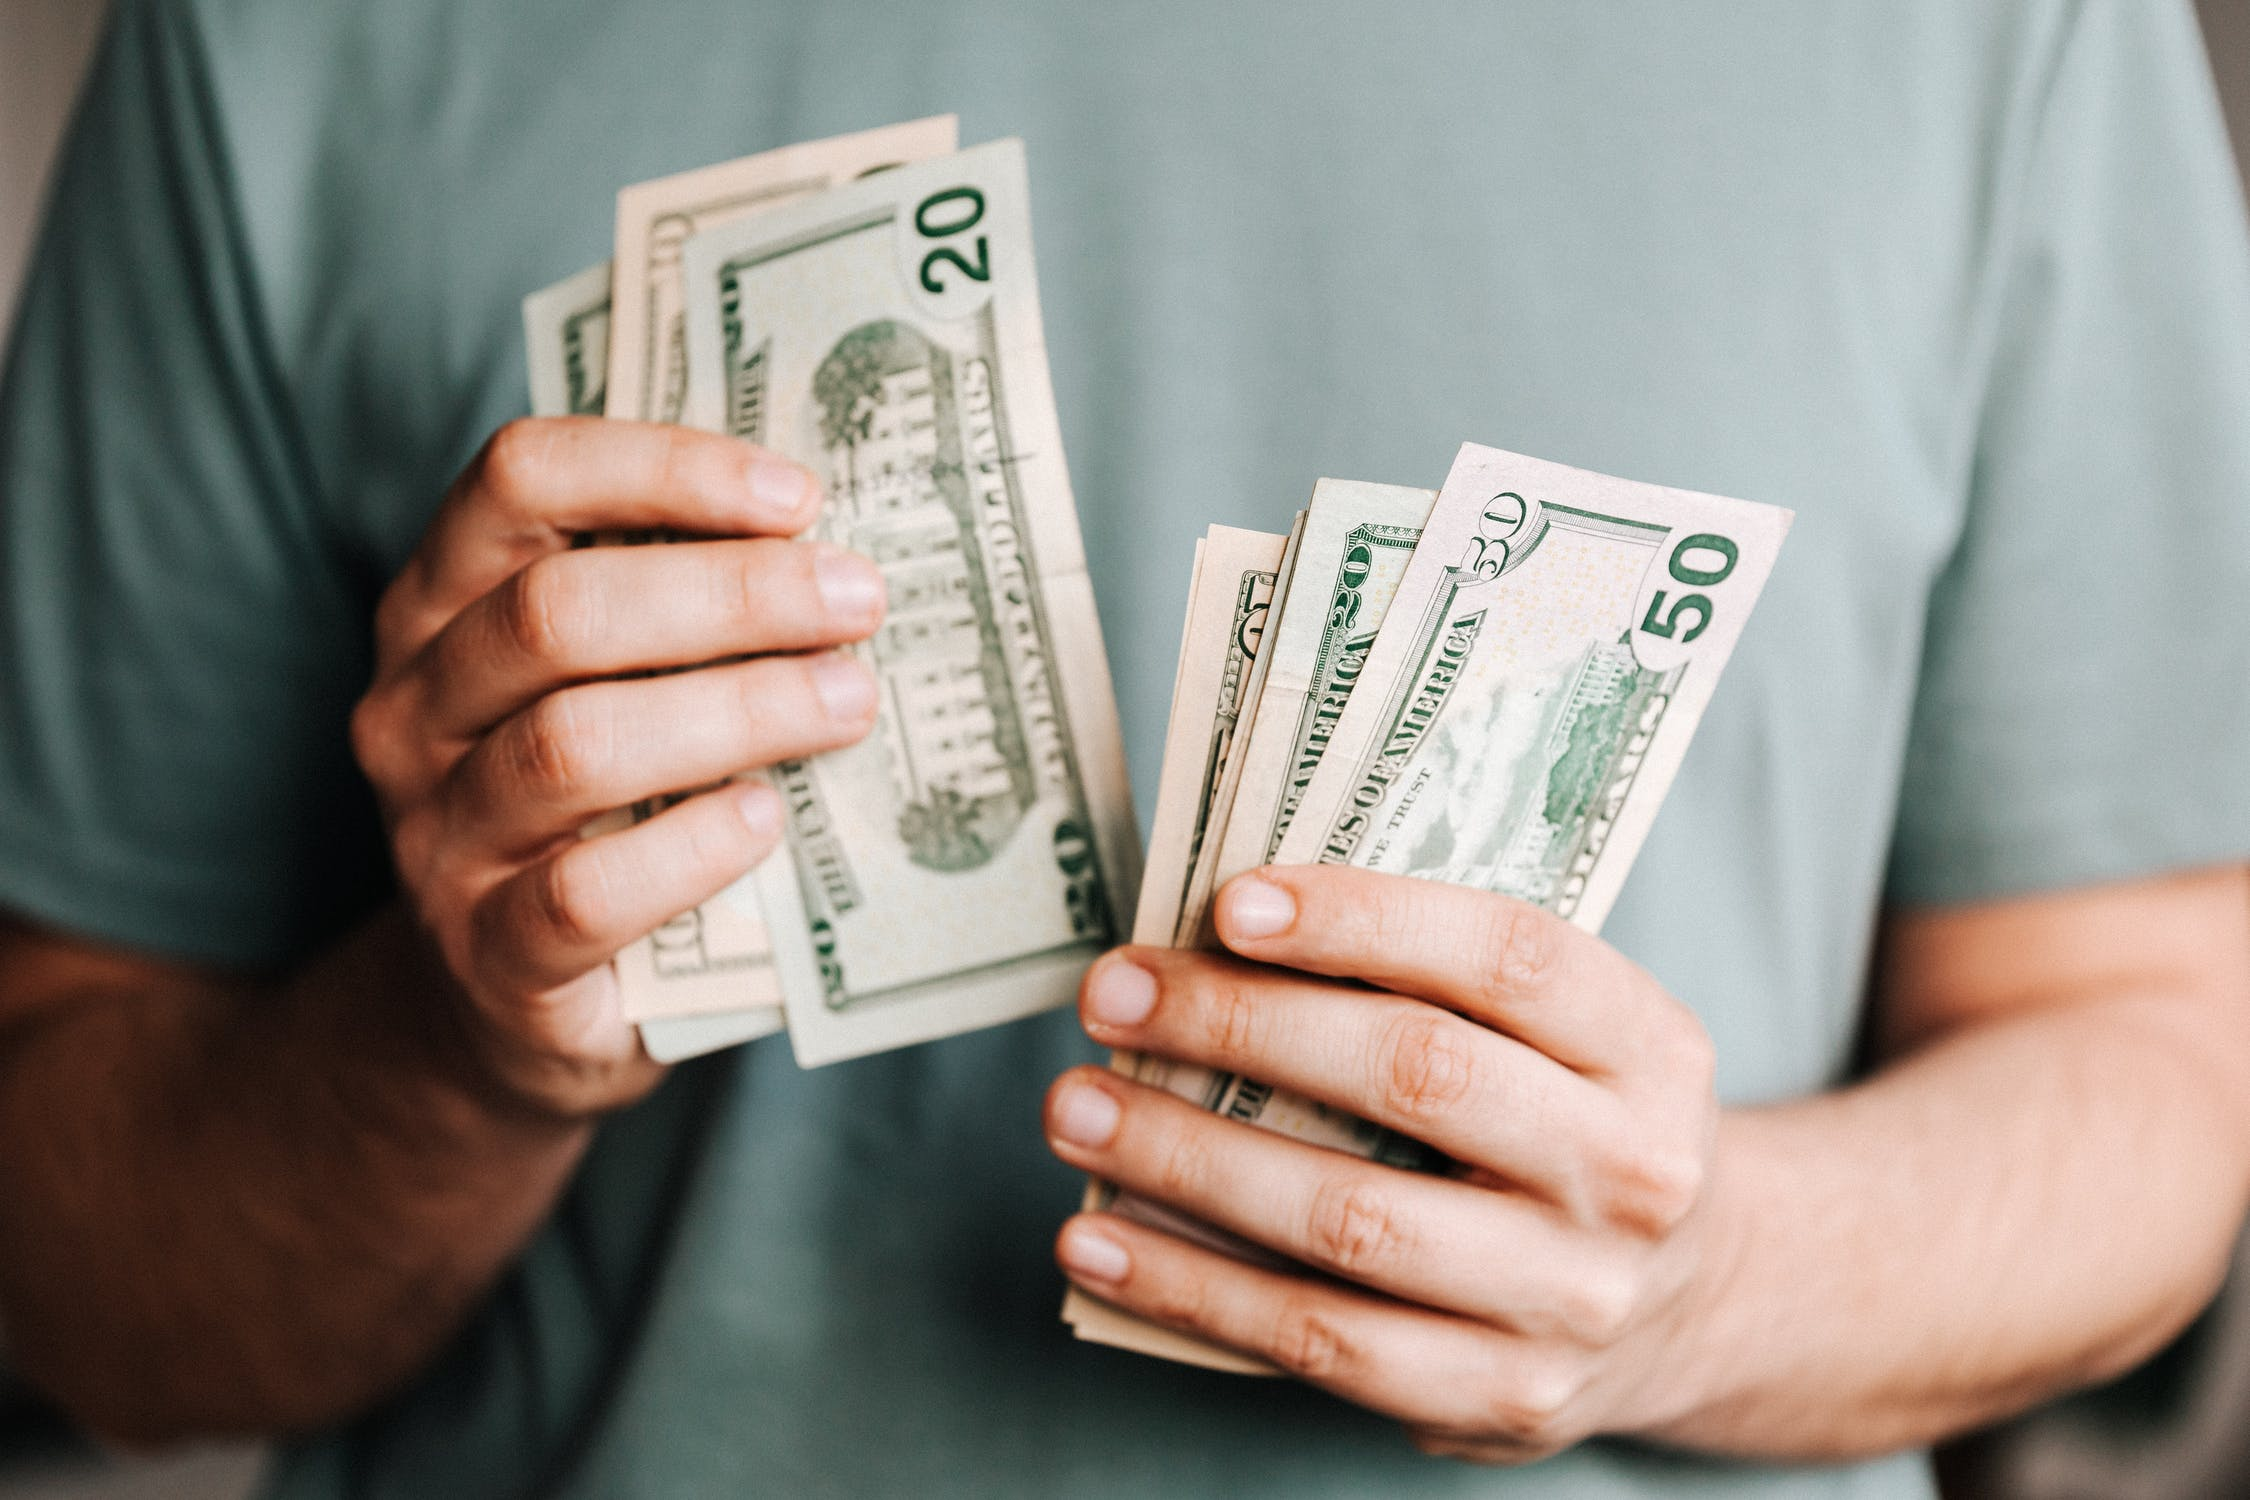 The young man with a handful of money   Source: Pixabay